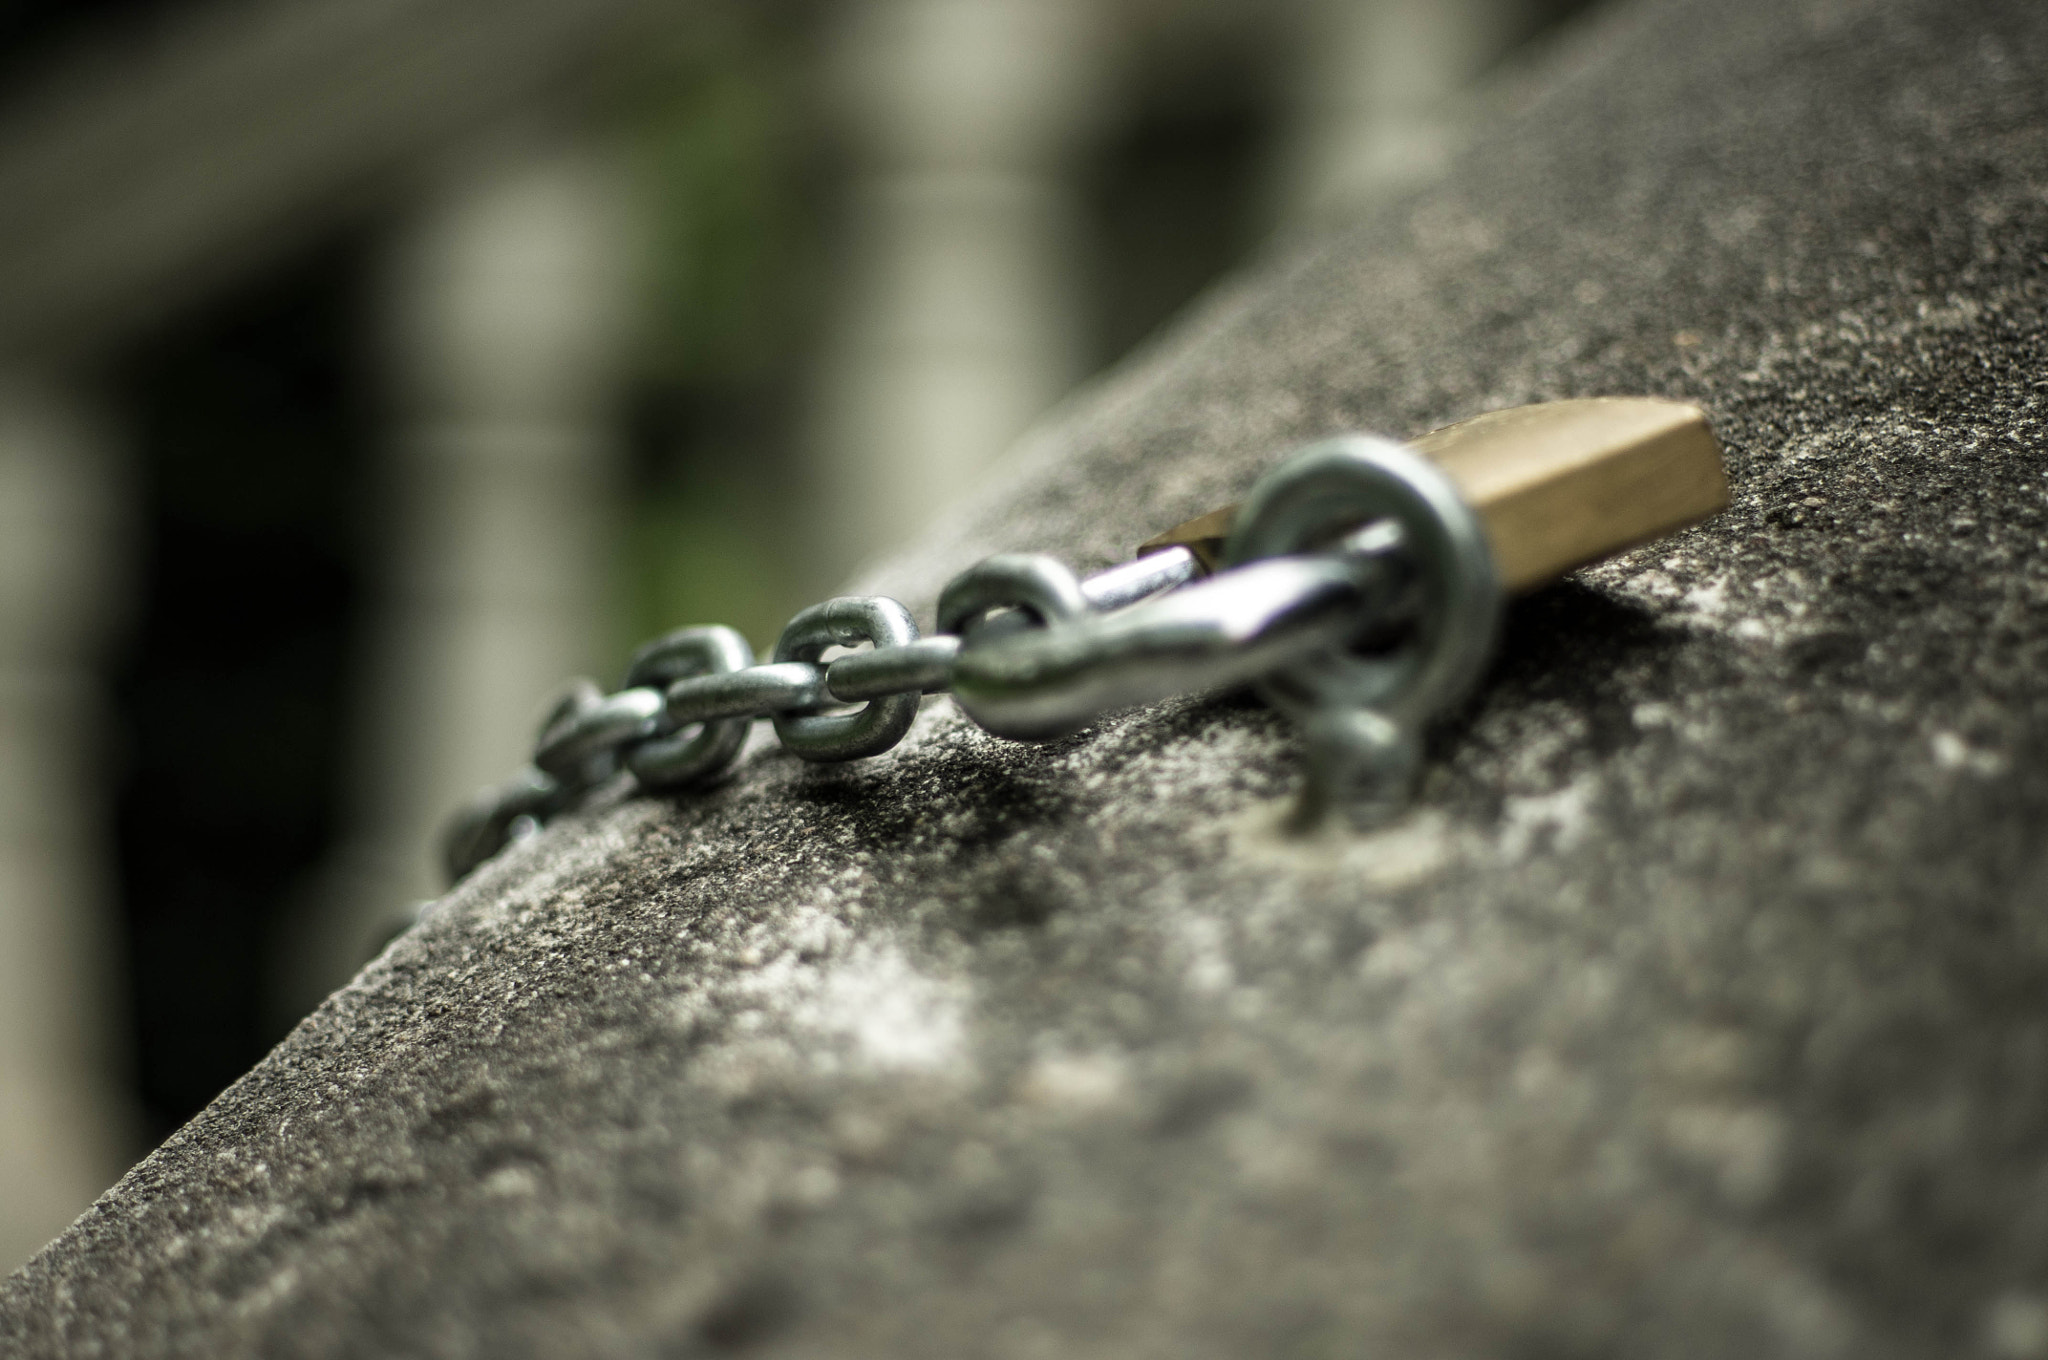 Photograph Scape from the chains by Endika Montejo on 500px